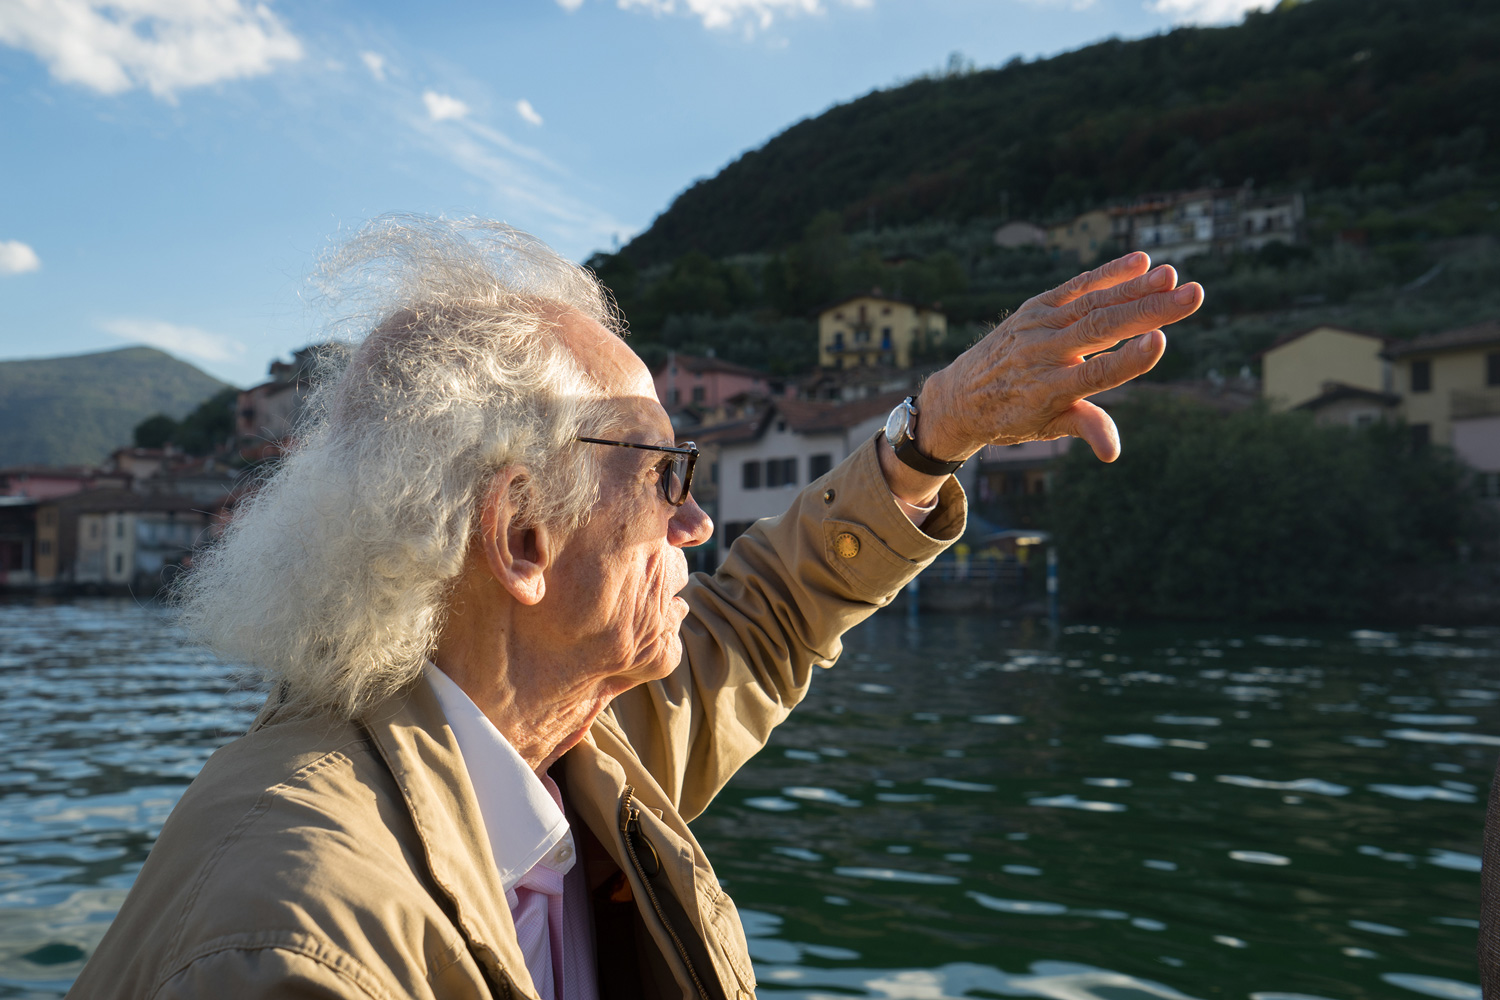 Christo on Lake Iseo, September 2015